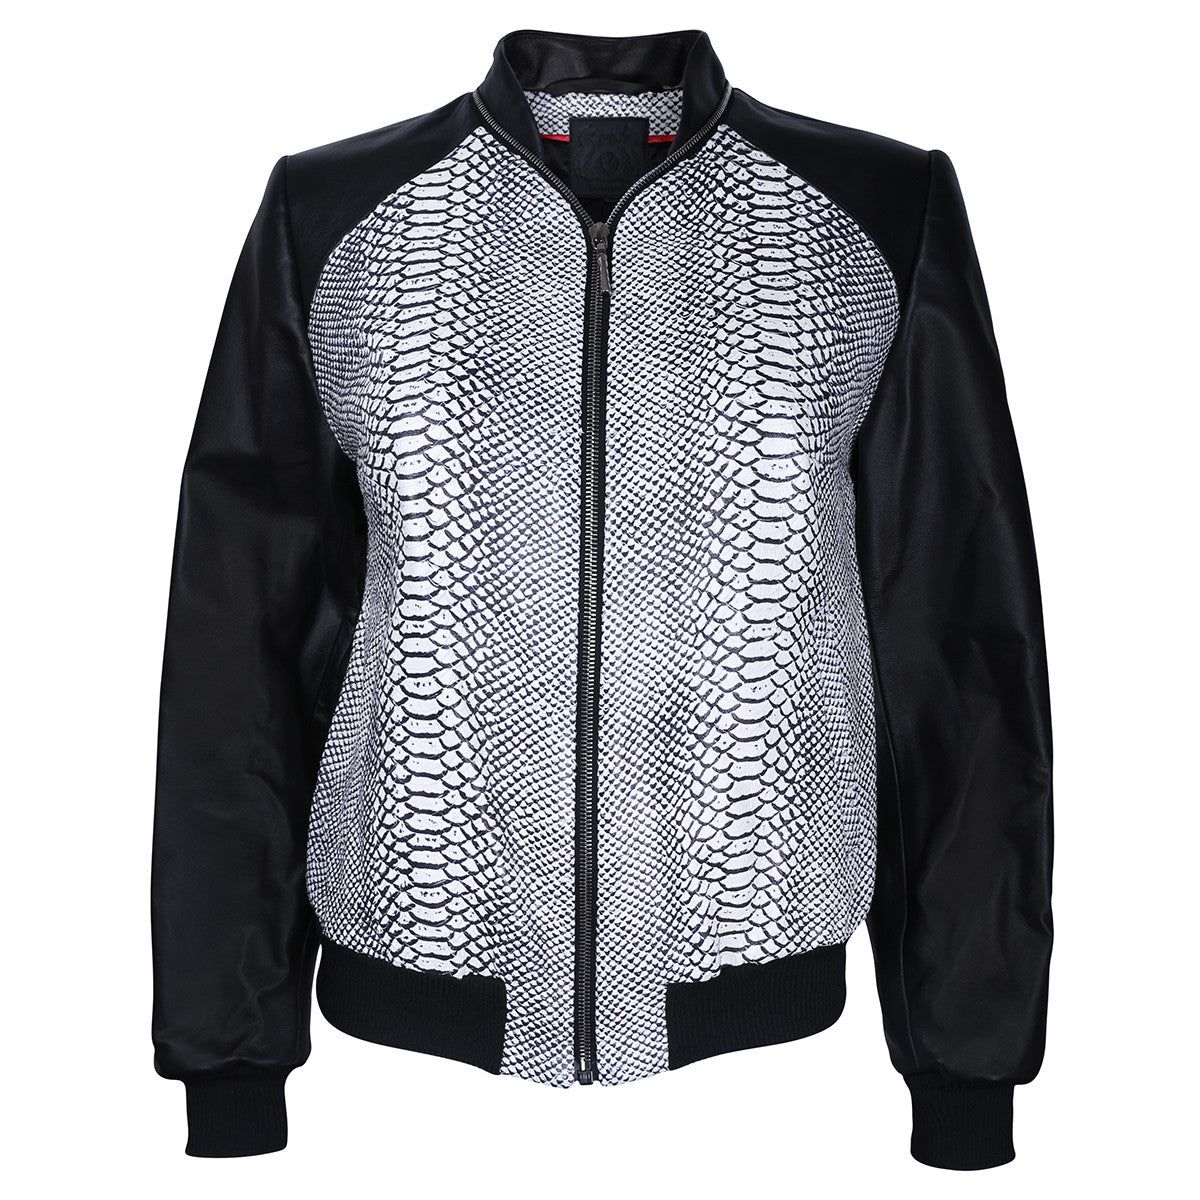 Monochrome Snake Leather Bomber Jacket - VOLS & ORIGINAL